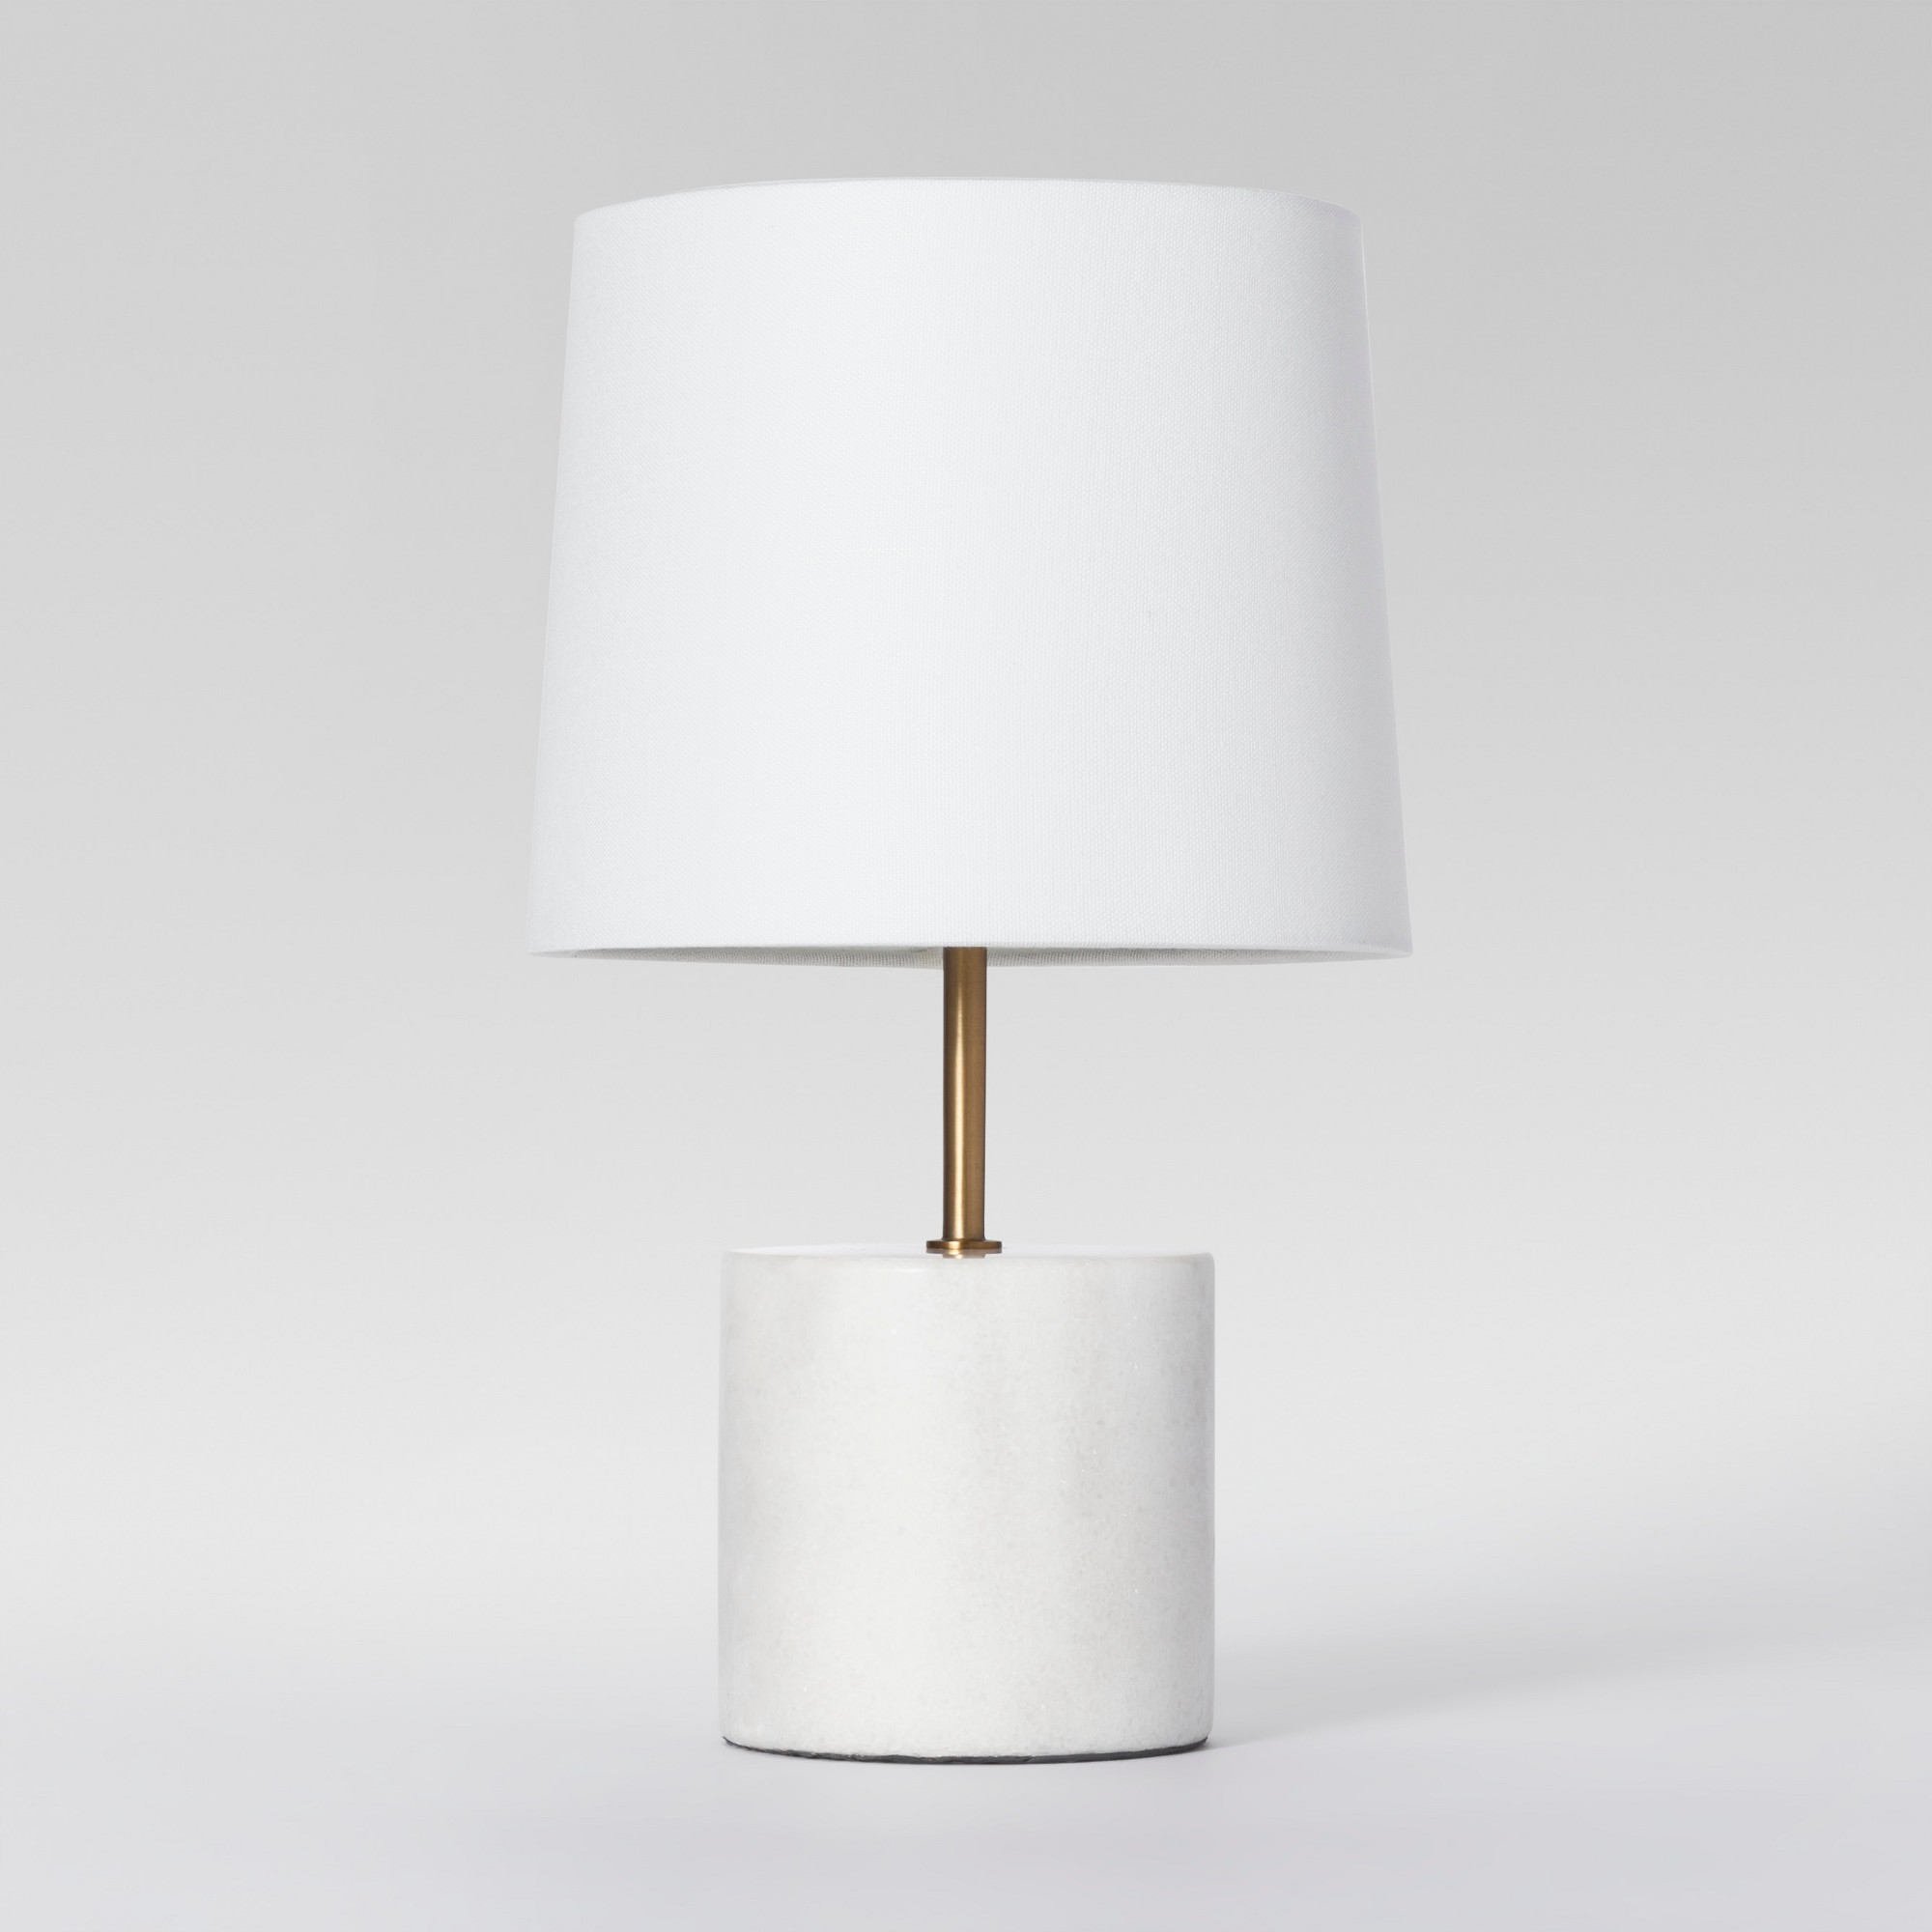 modern marble accent table lamp white includes energy efficient lamps light bulb project outdoor furniture manufacturers fruit cocktail small vintage pier one area rugs west elm